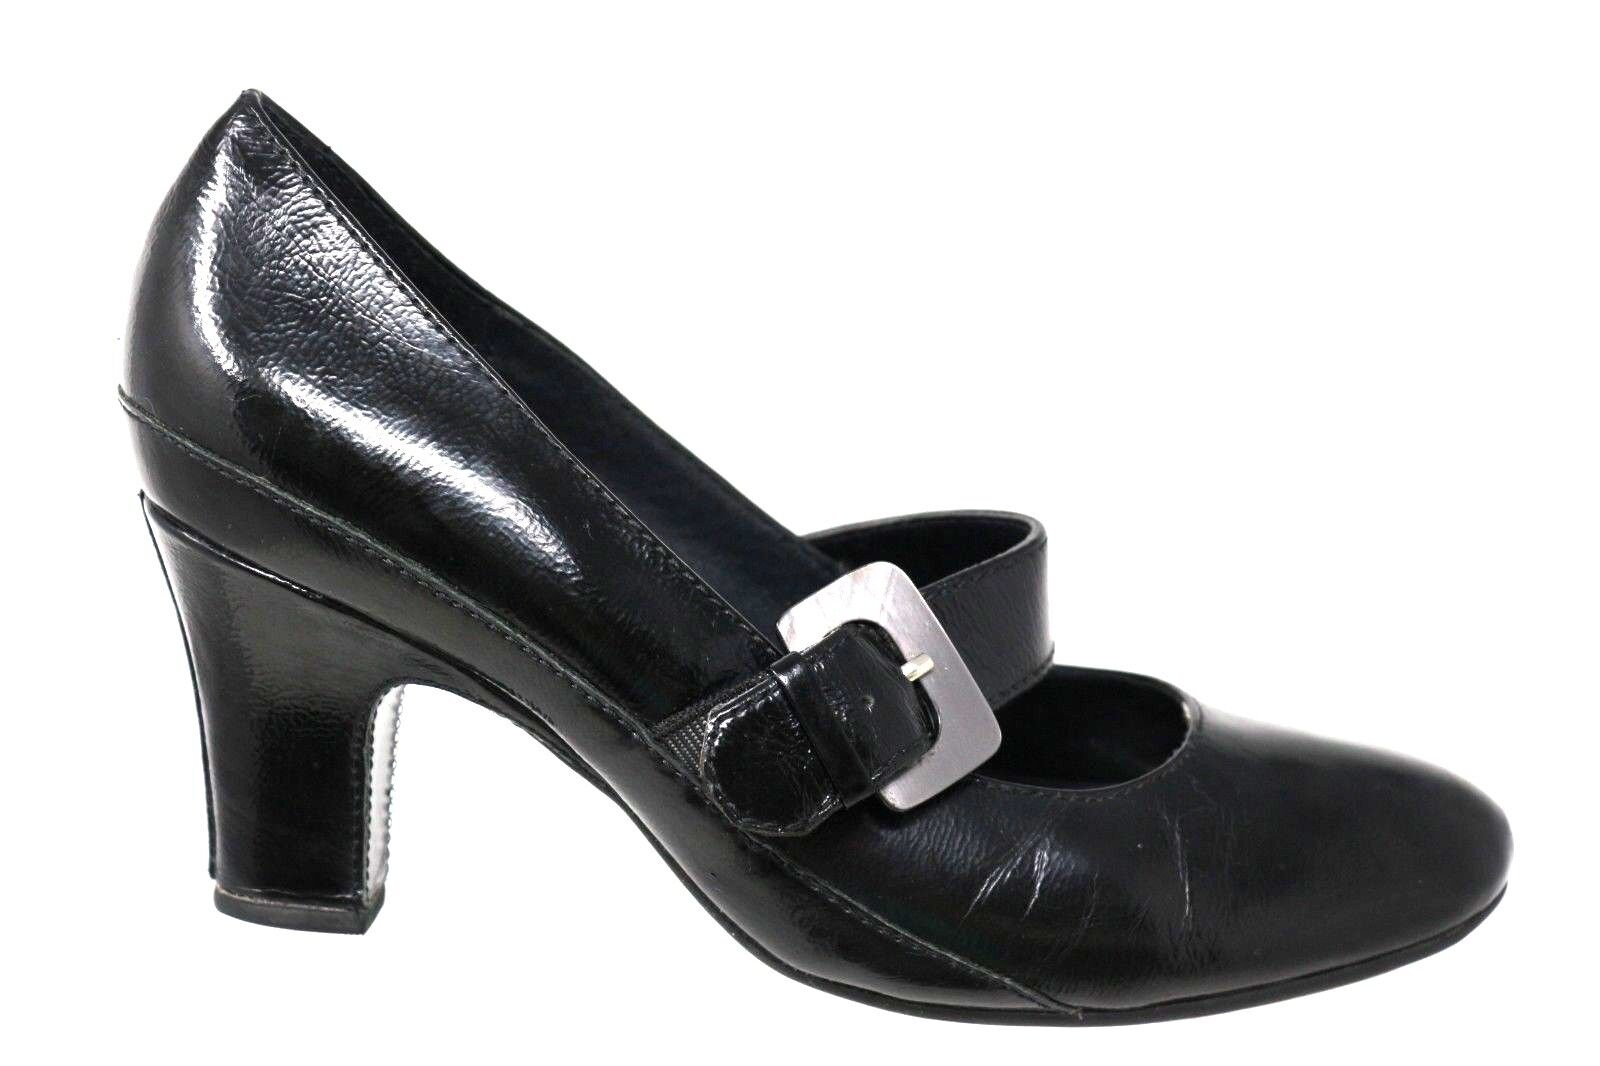 Clarks Artisian Black Leather Mary Jane 3  Heels Pumps shoes Womens Size 8.5M